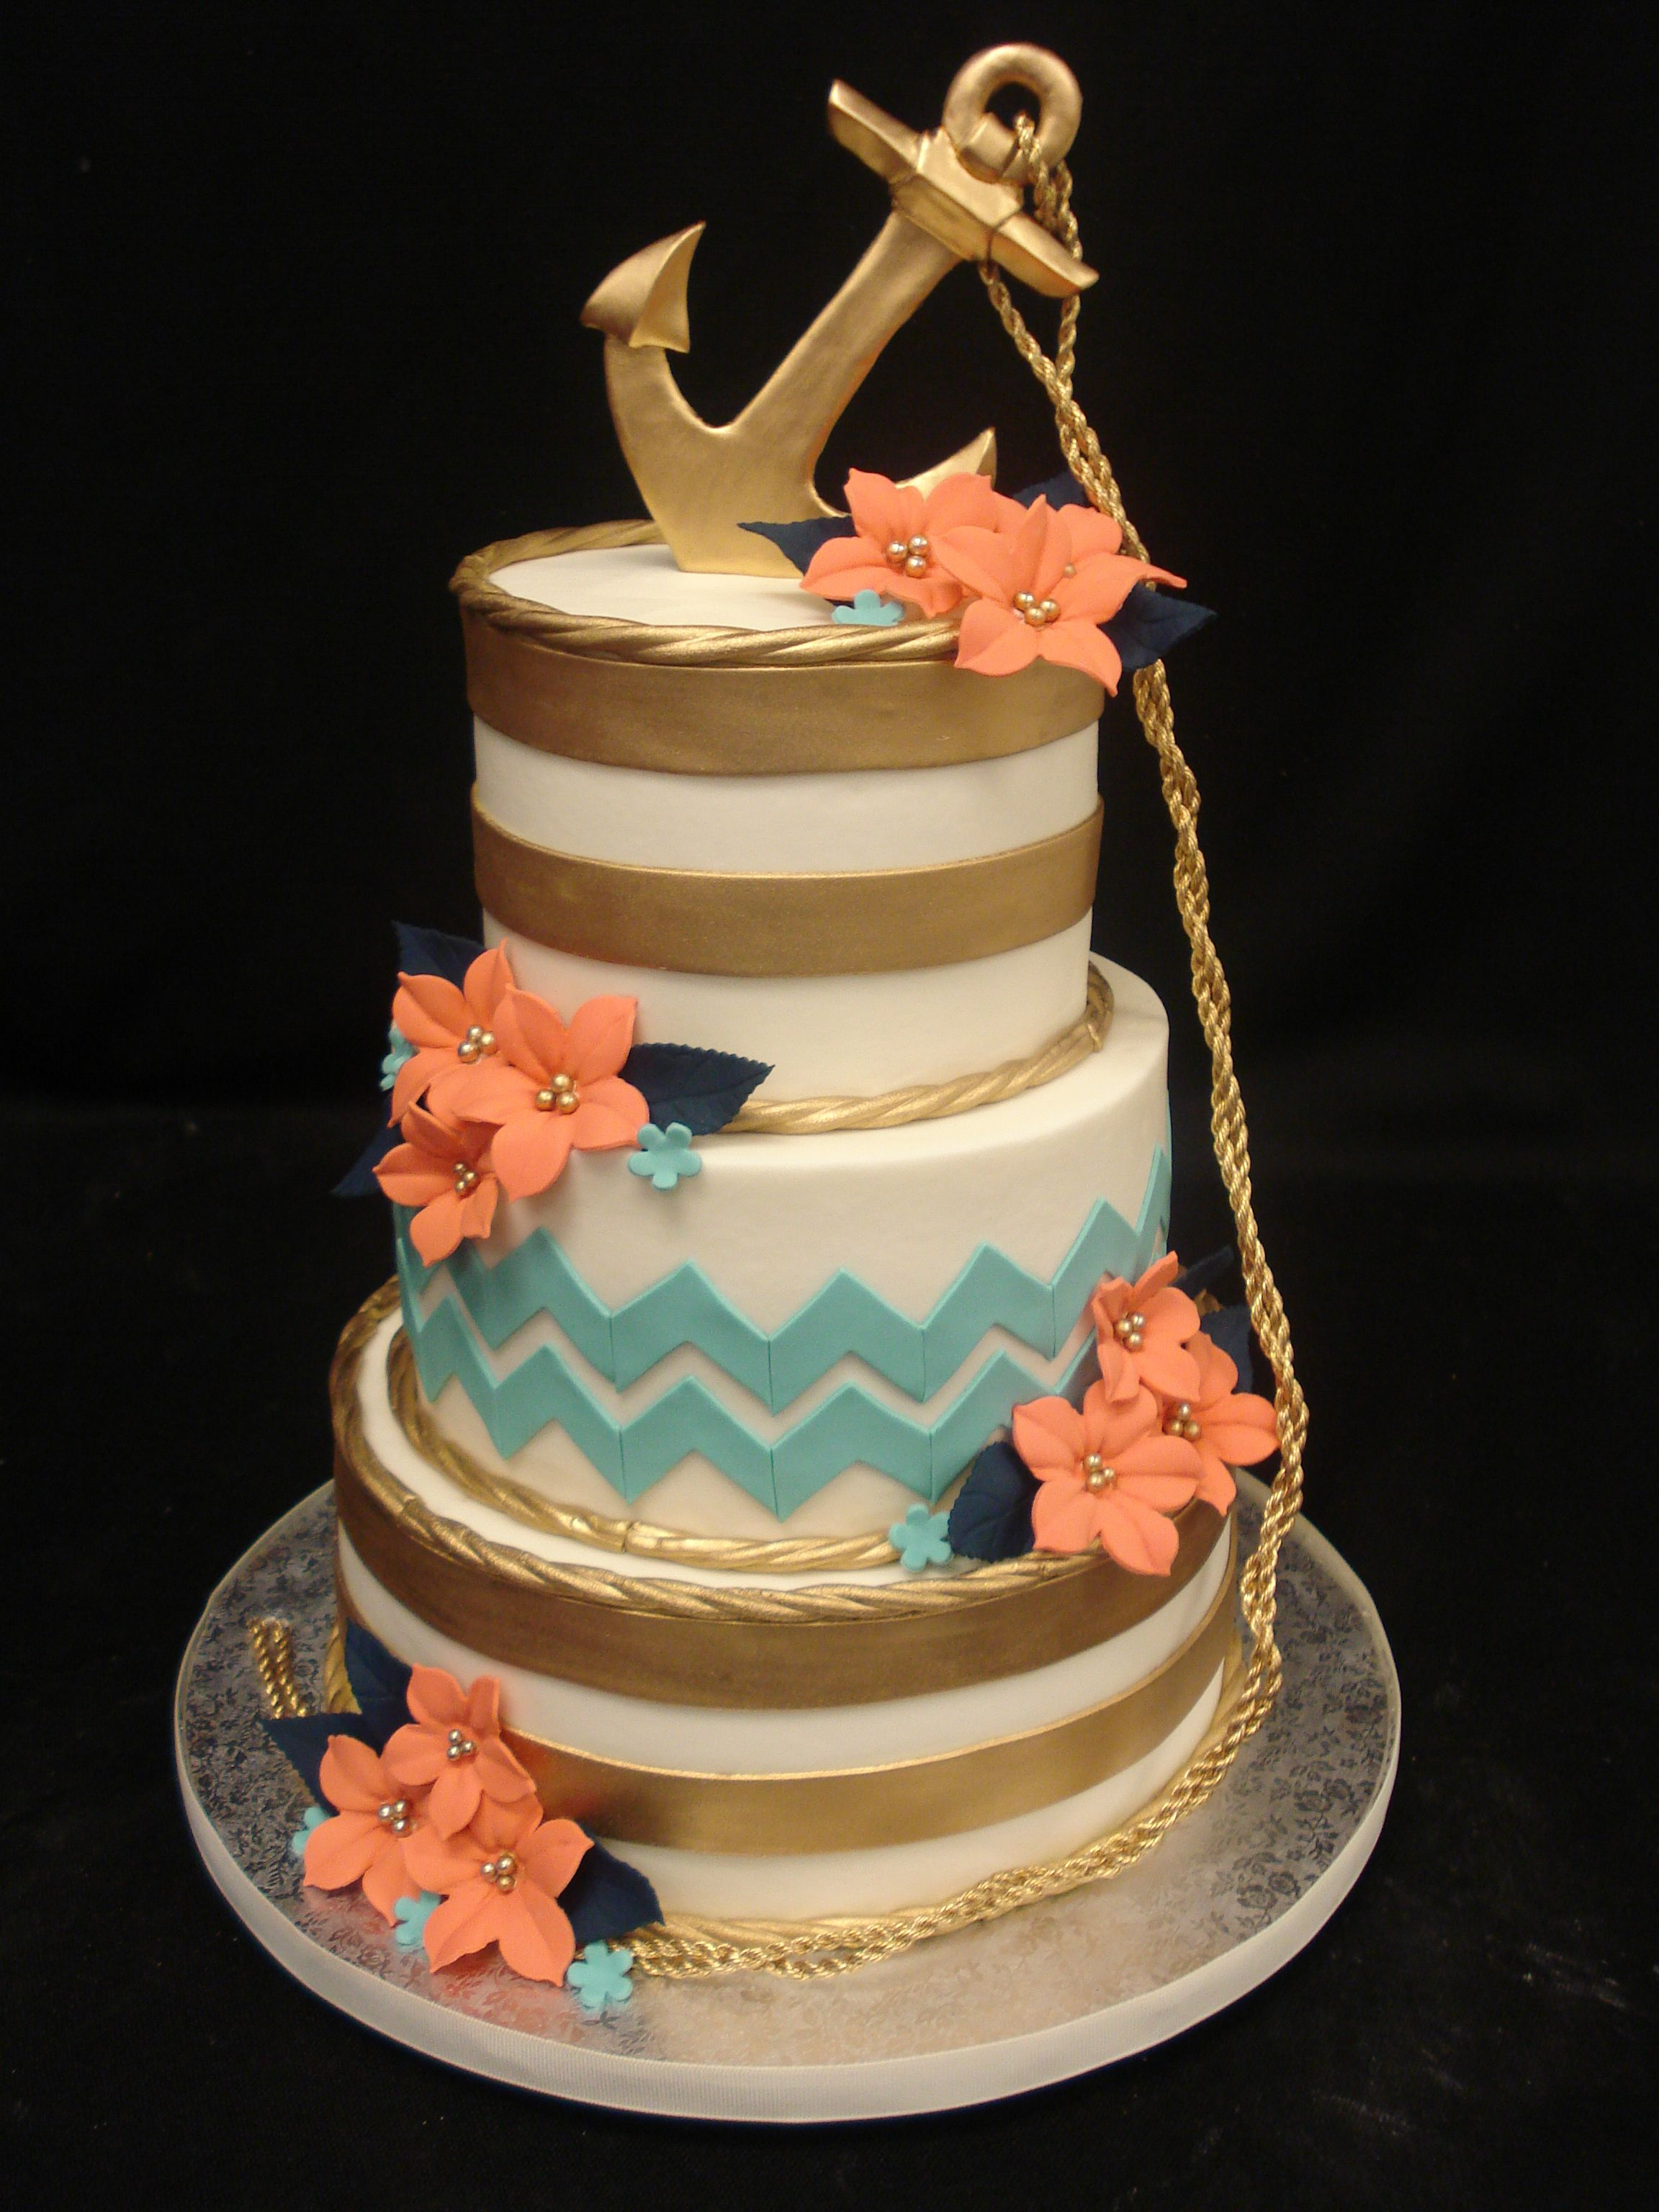 Gold bands aqua chevron and peach petunias adorn this party cake